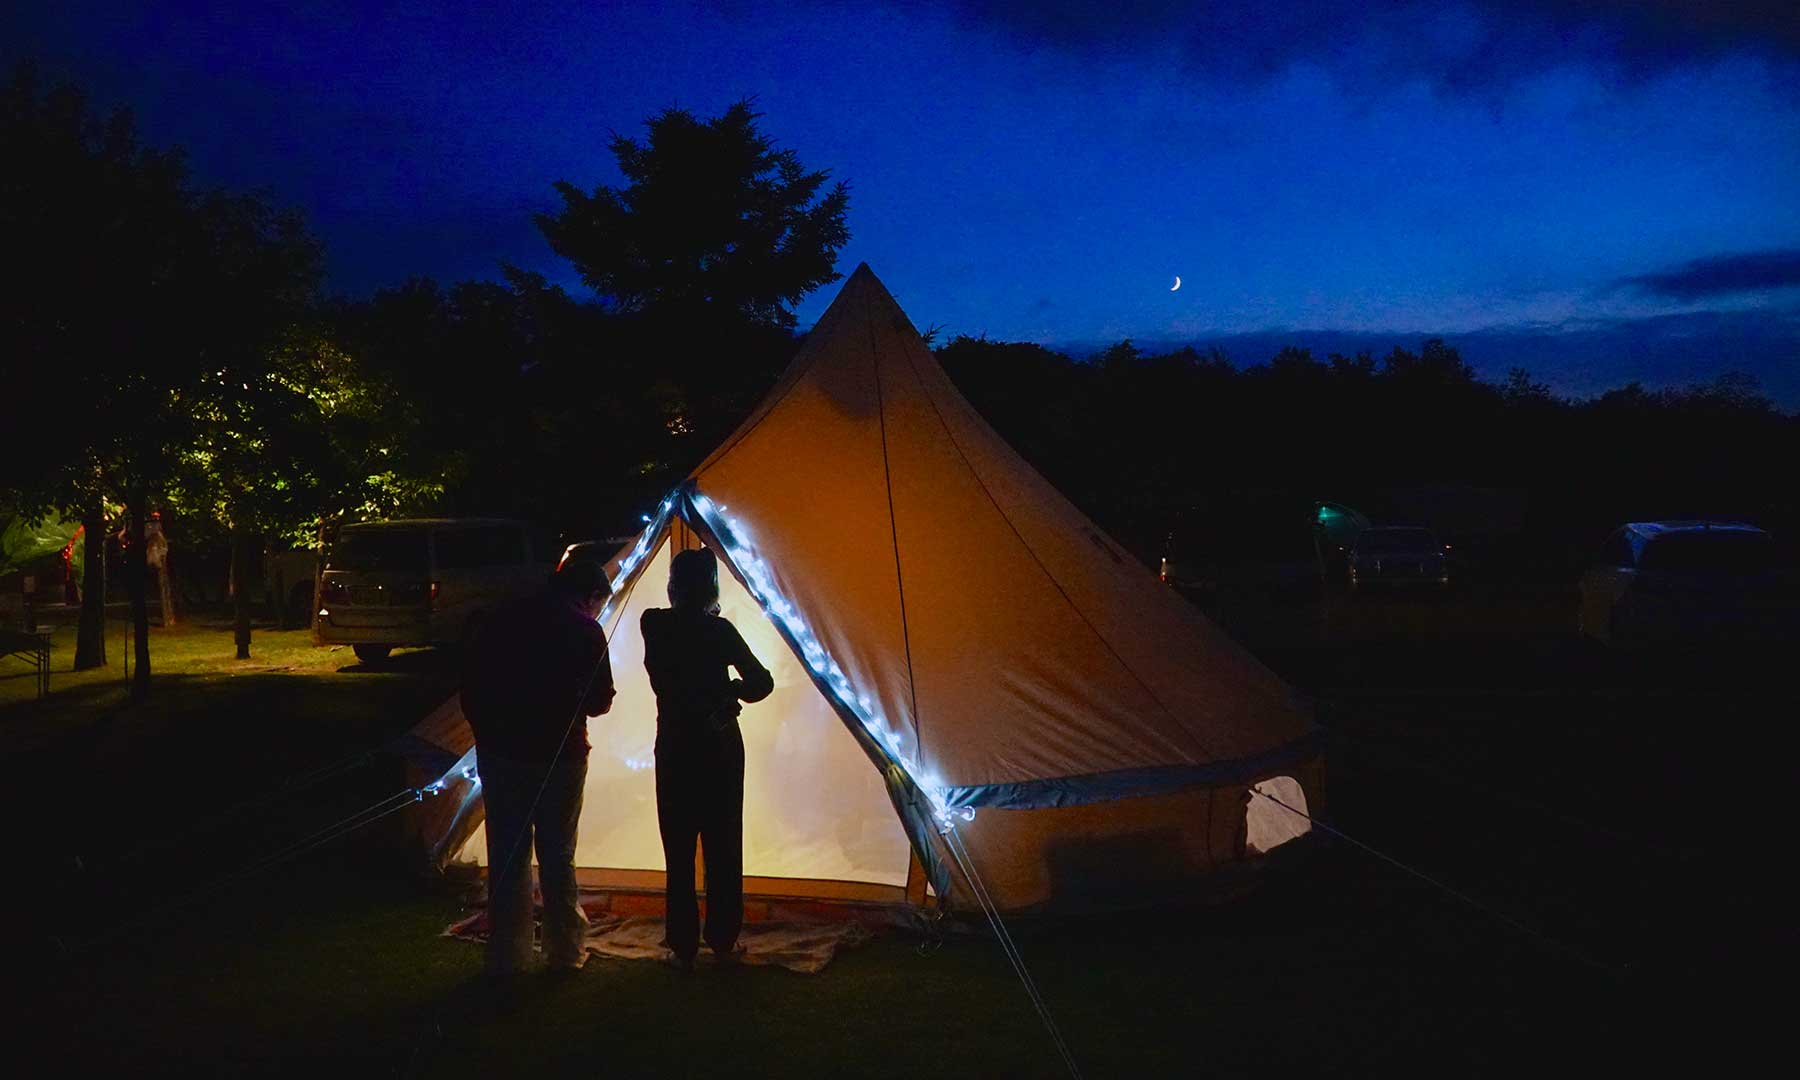 Silhouette of two people standing in front of camping tent at dusk